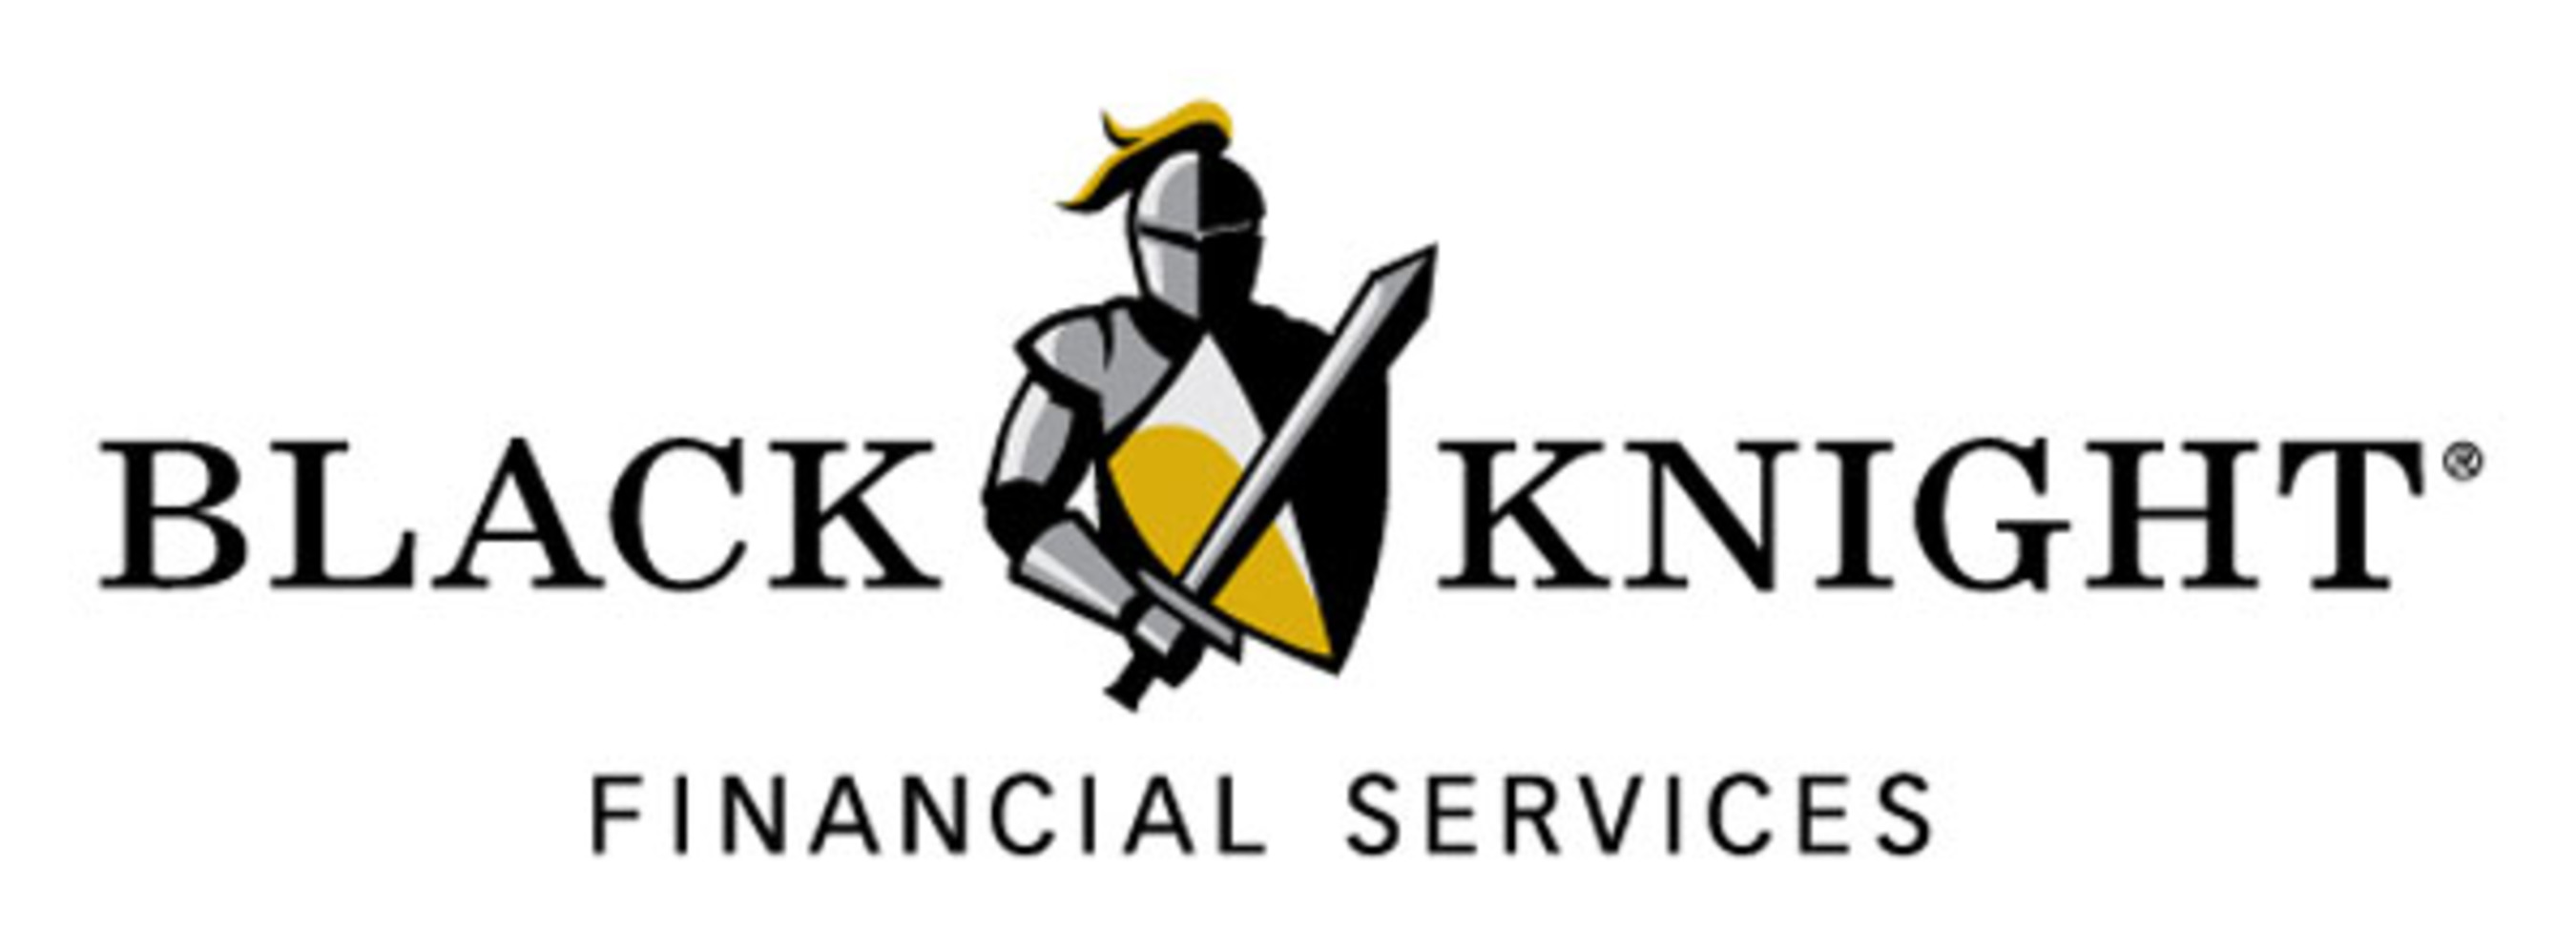 Black Knight Financial Services Reports Second Quarter 2015 Financial Results